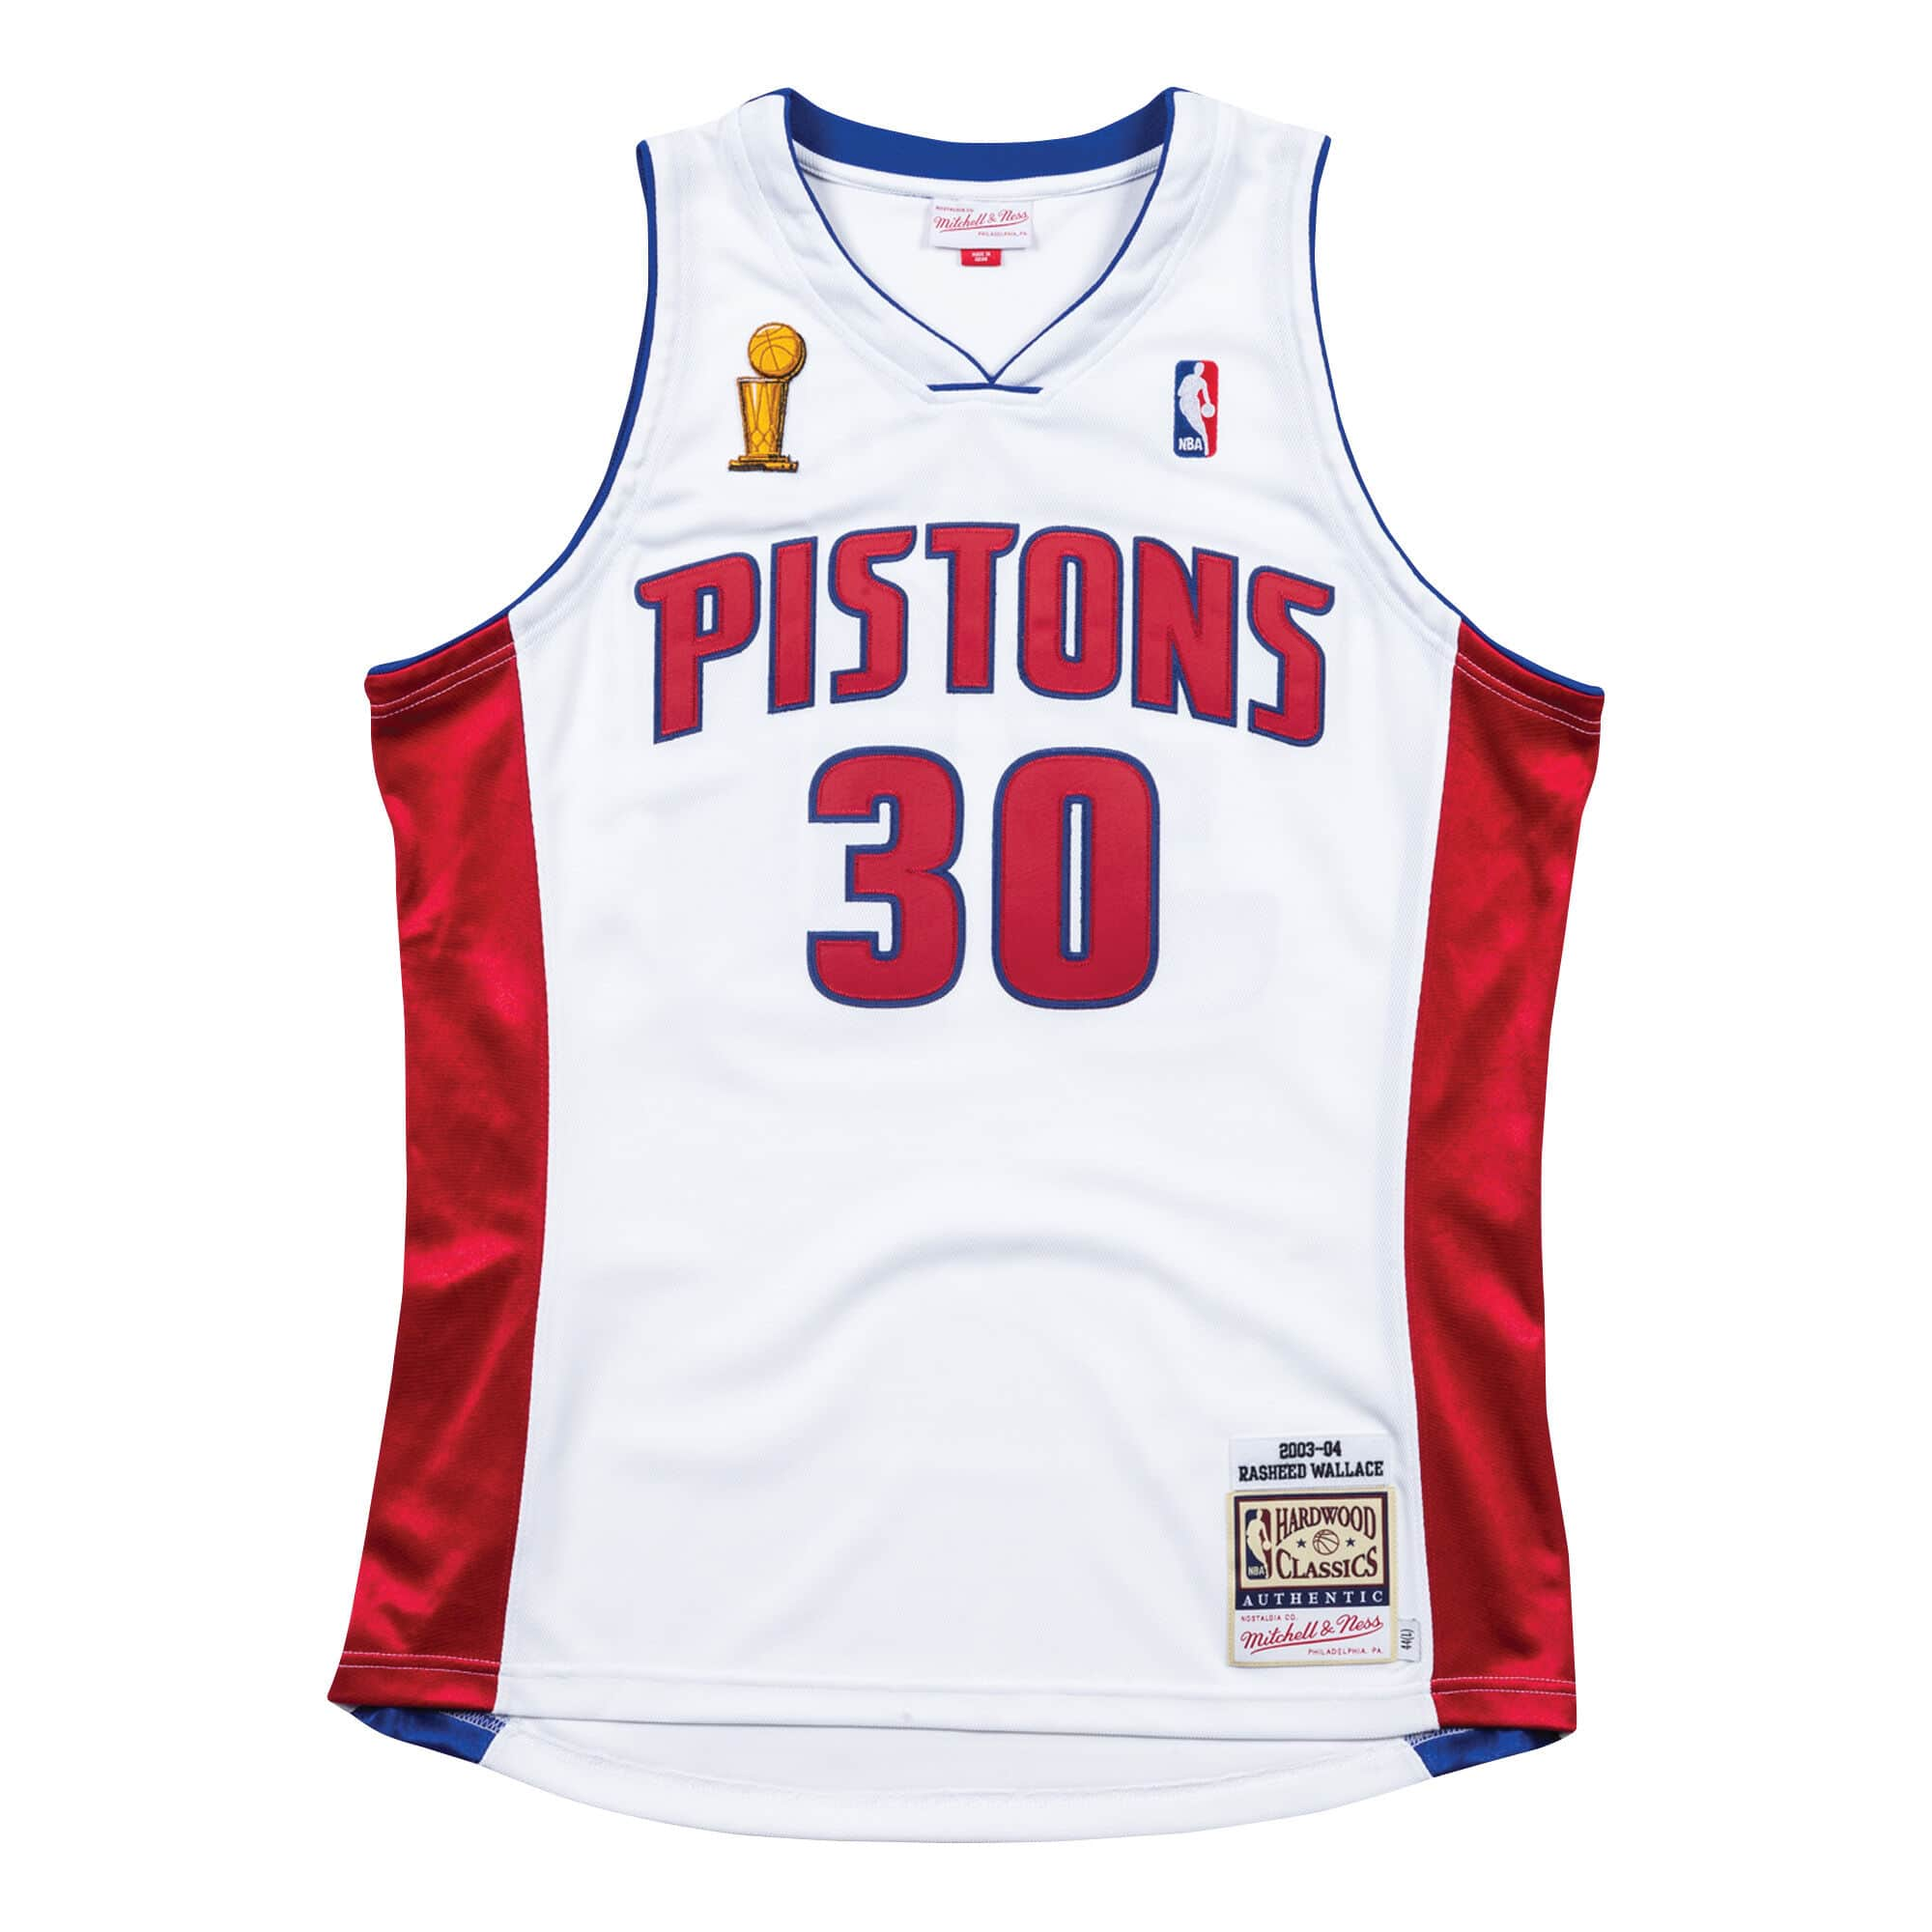 Authentic Jersey Detroit Pistons Home Finals 2003-04 Rasheed Wallace